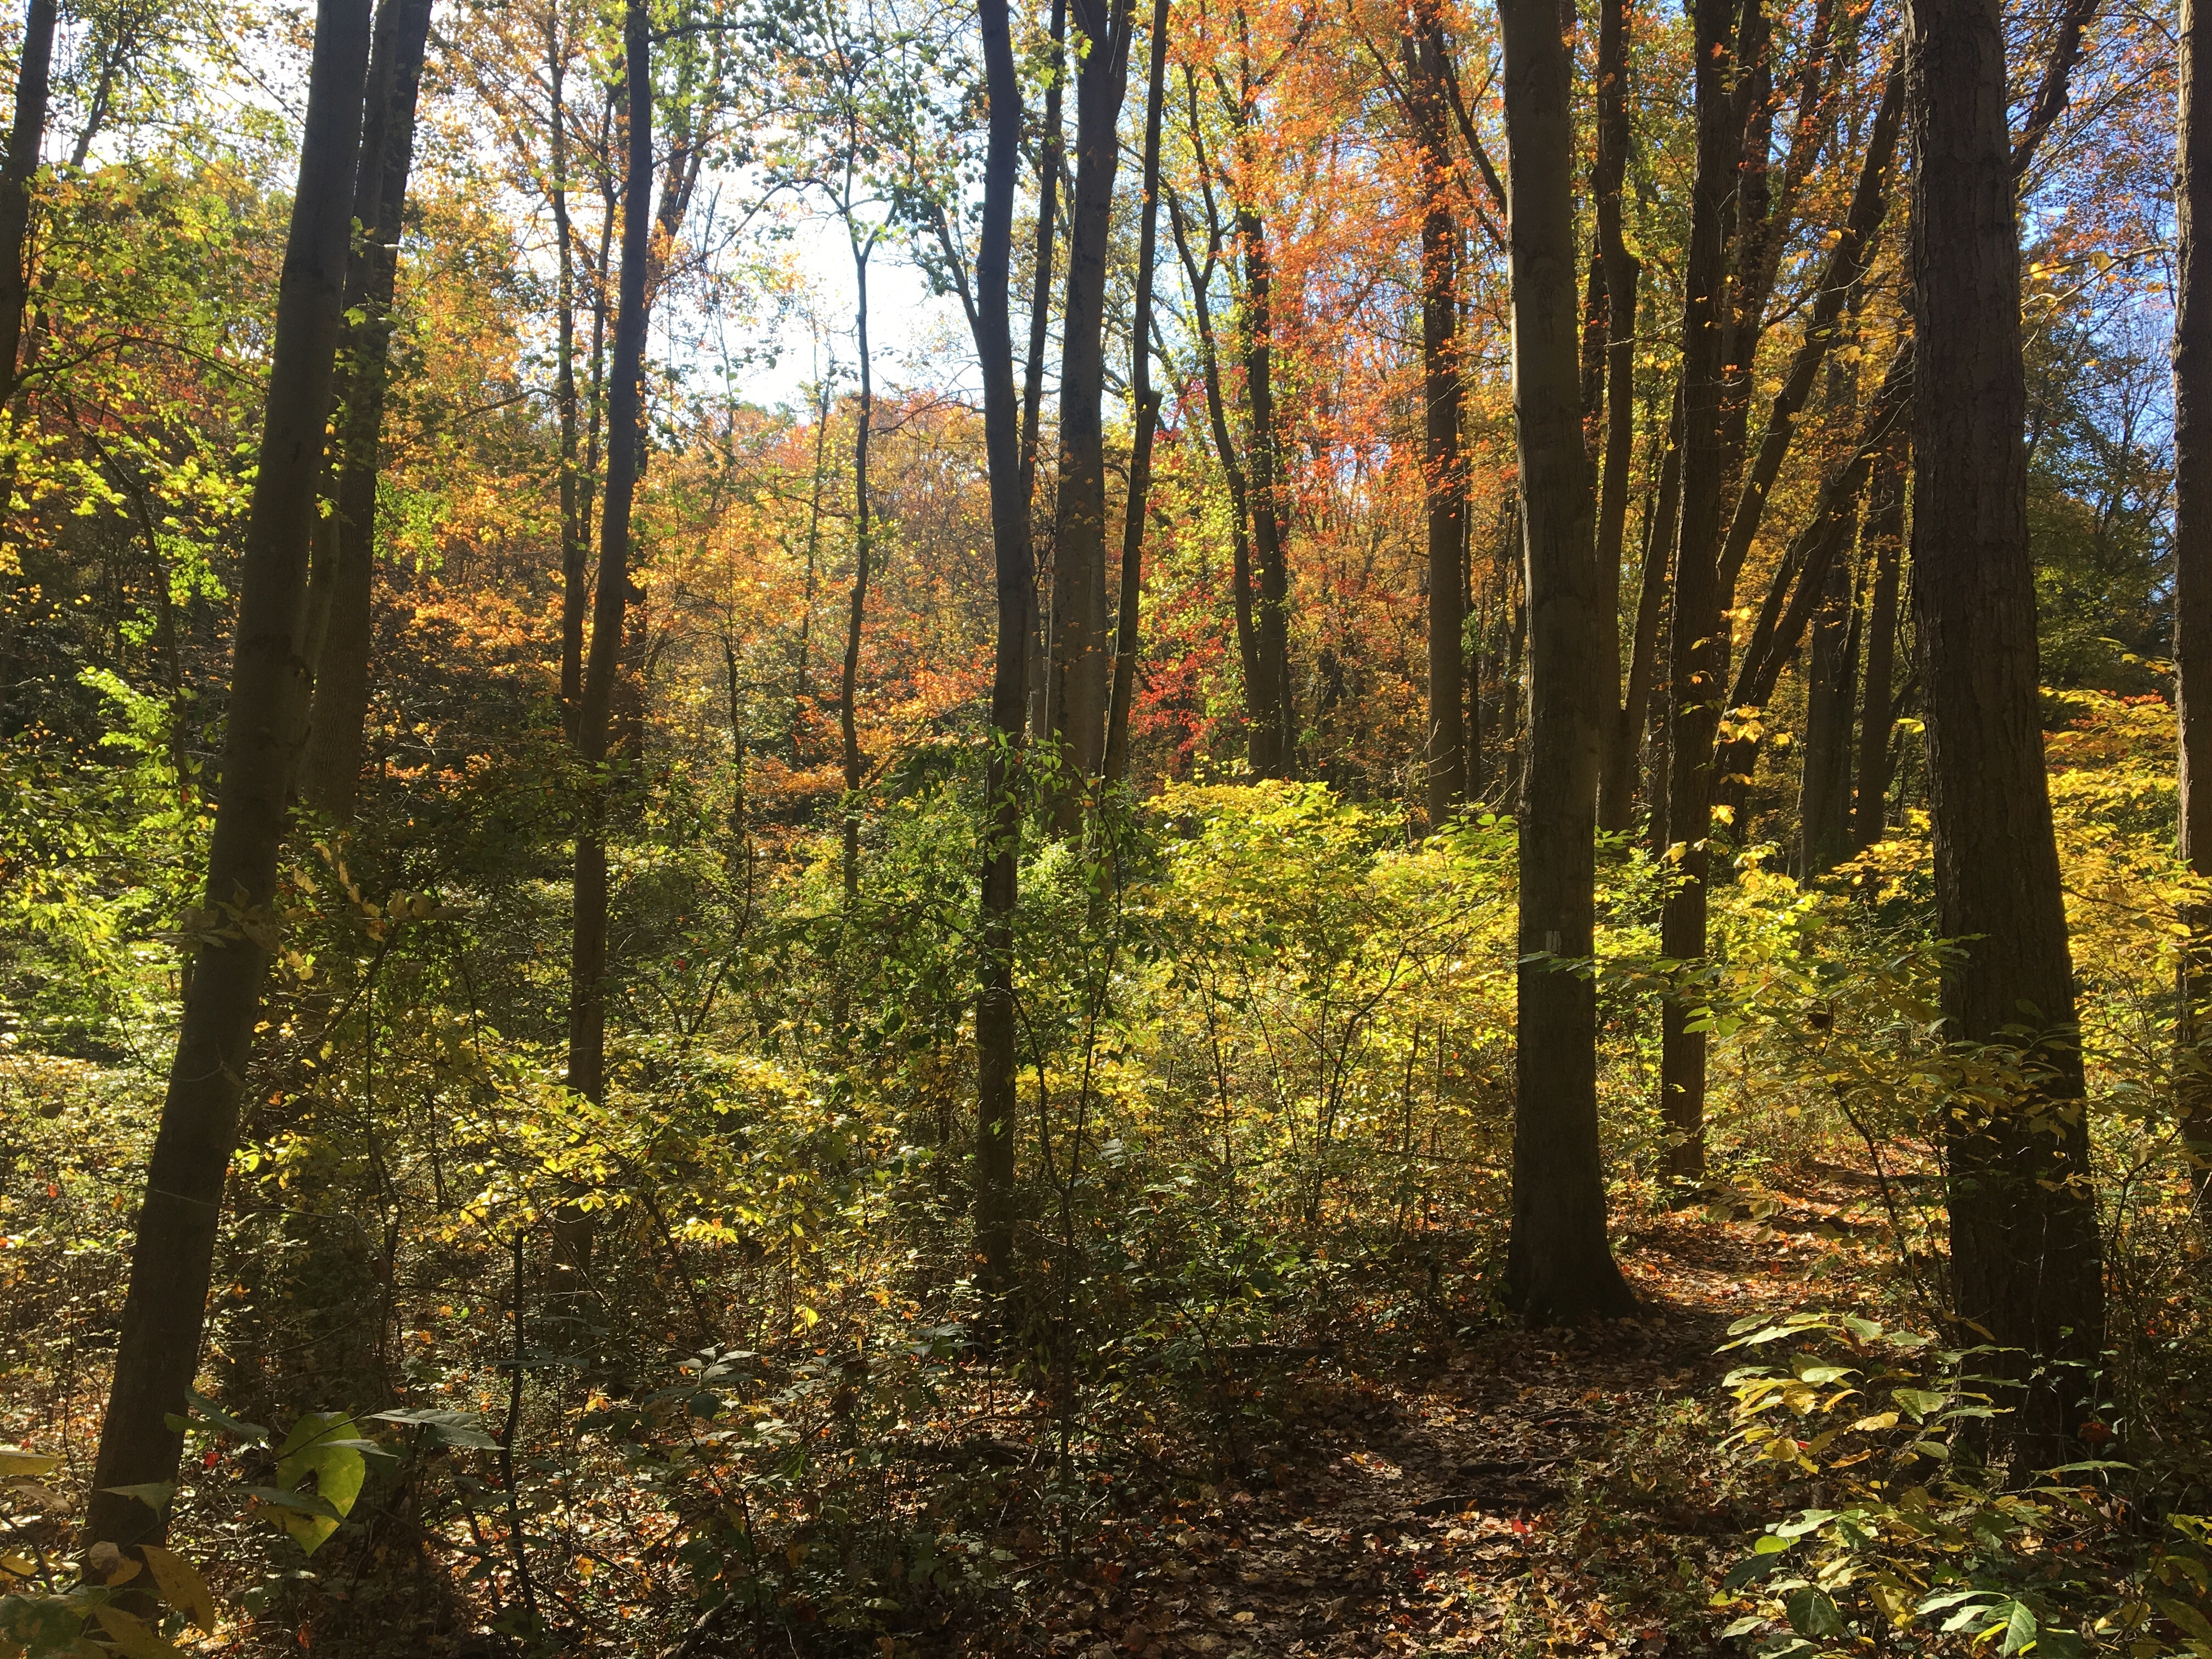 Ridley Creek State Park in the fall